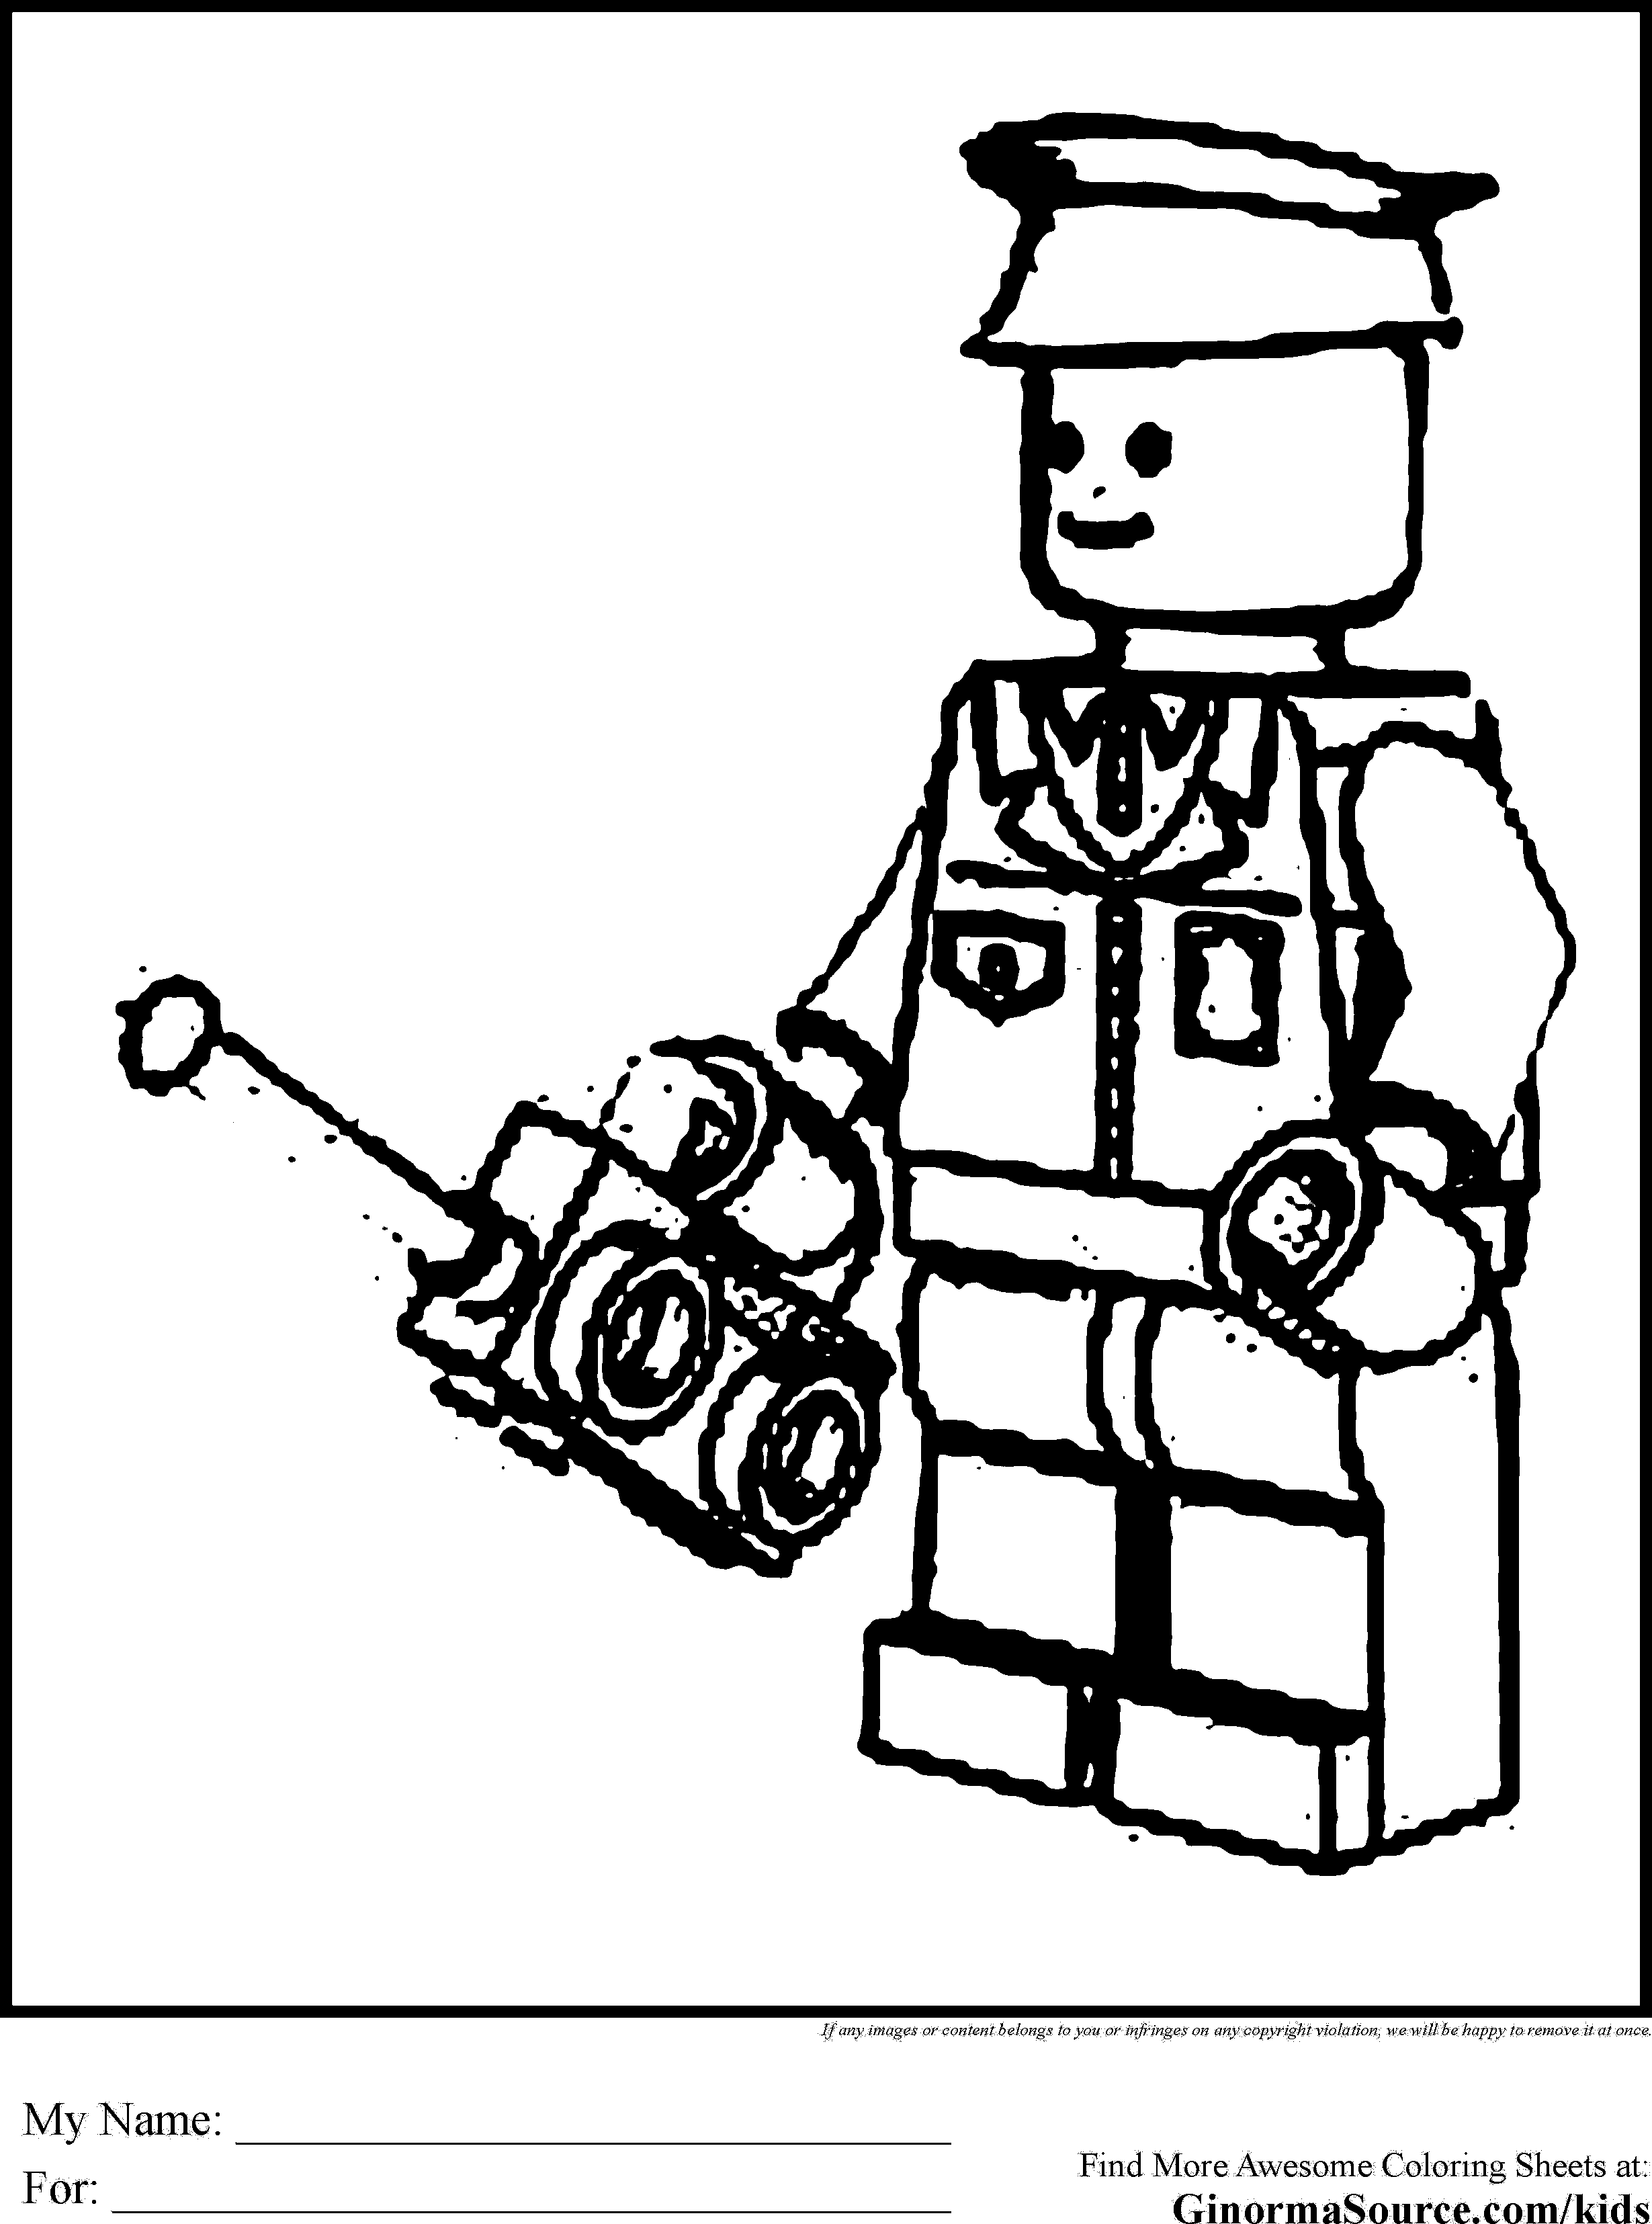 lego police coloring sheets high quality coloring pages - Lego City Airplane Coloring Pages